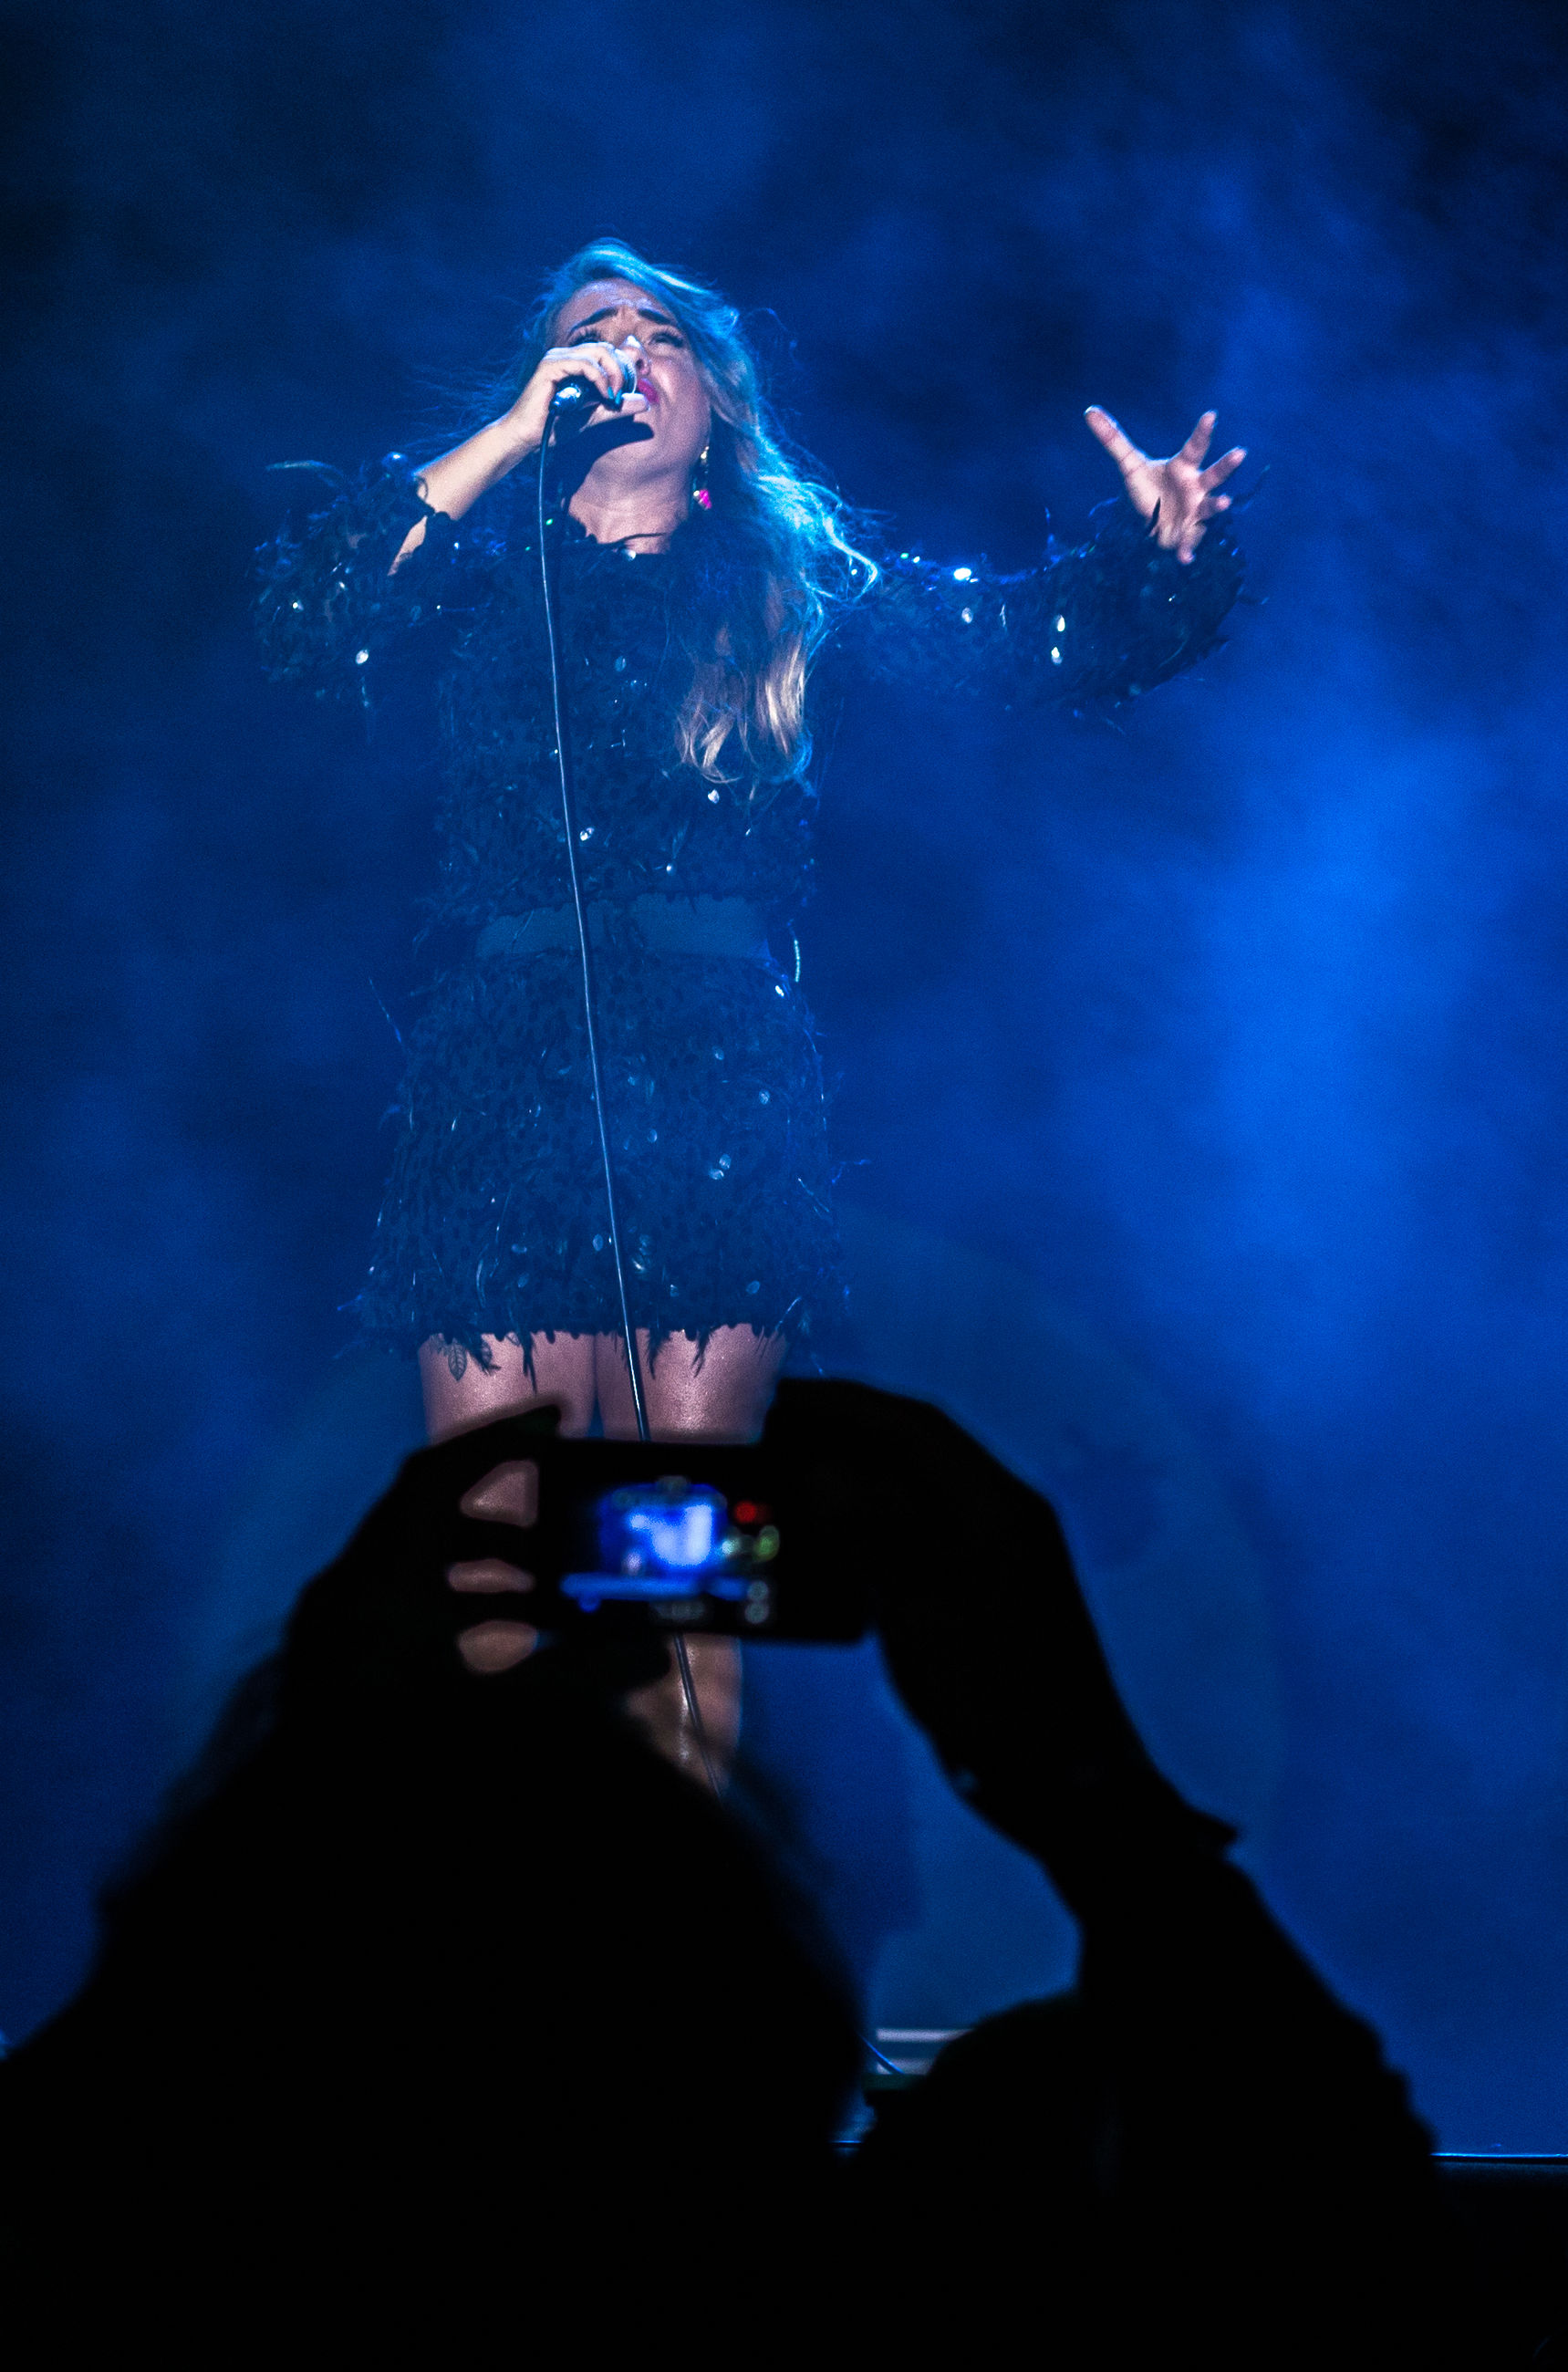 real people, night, holding, one person, water, lifestyles, leisure activity, illuminated, singing, music, arts culture and entertainment, singer, young adult, human hand, nightlife, microphone, young women, performance, outdoors, musician, people